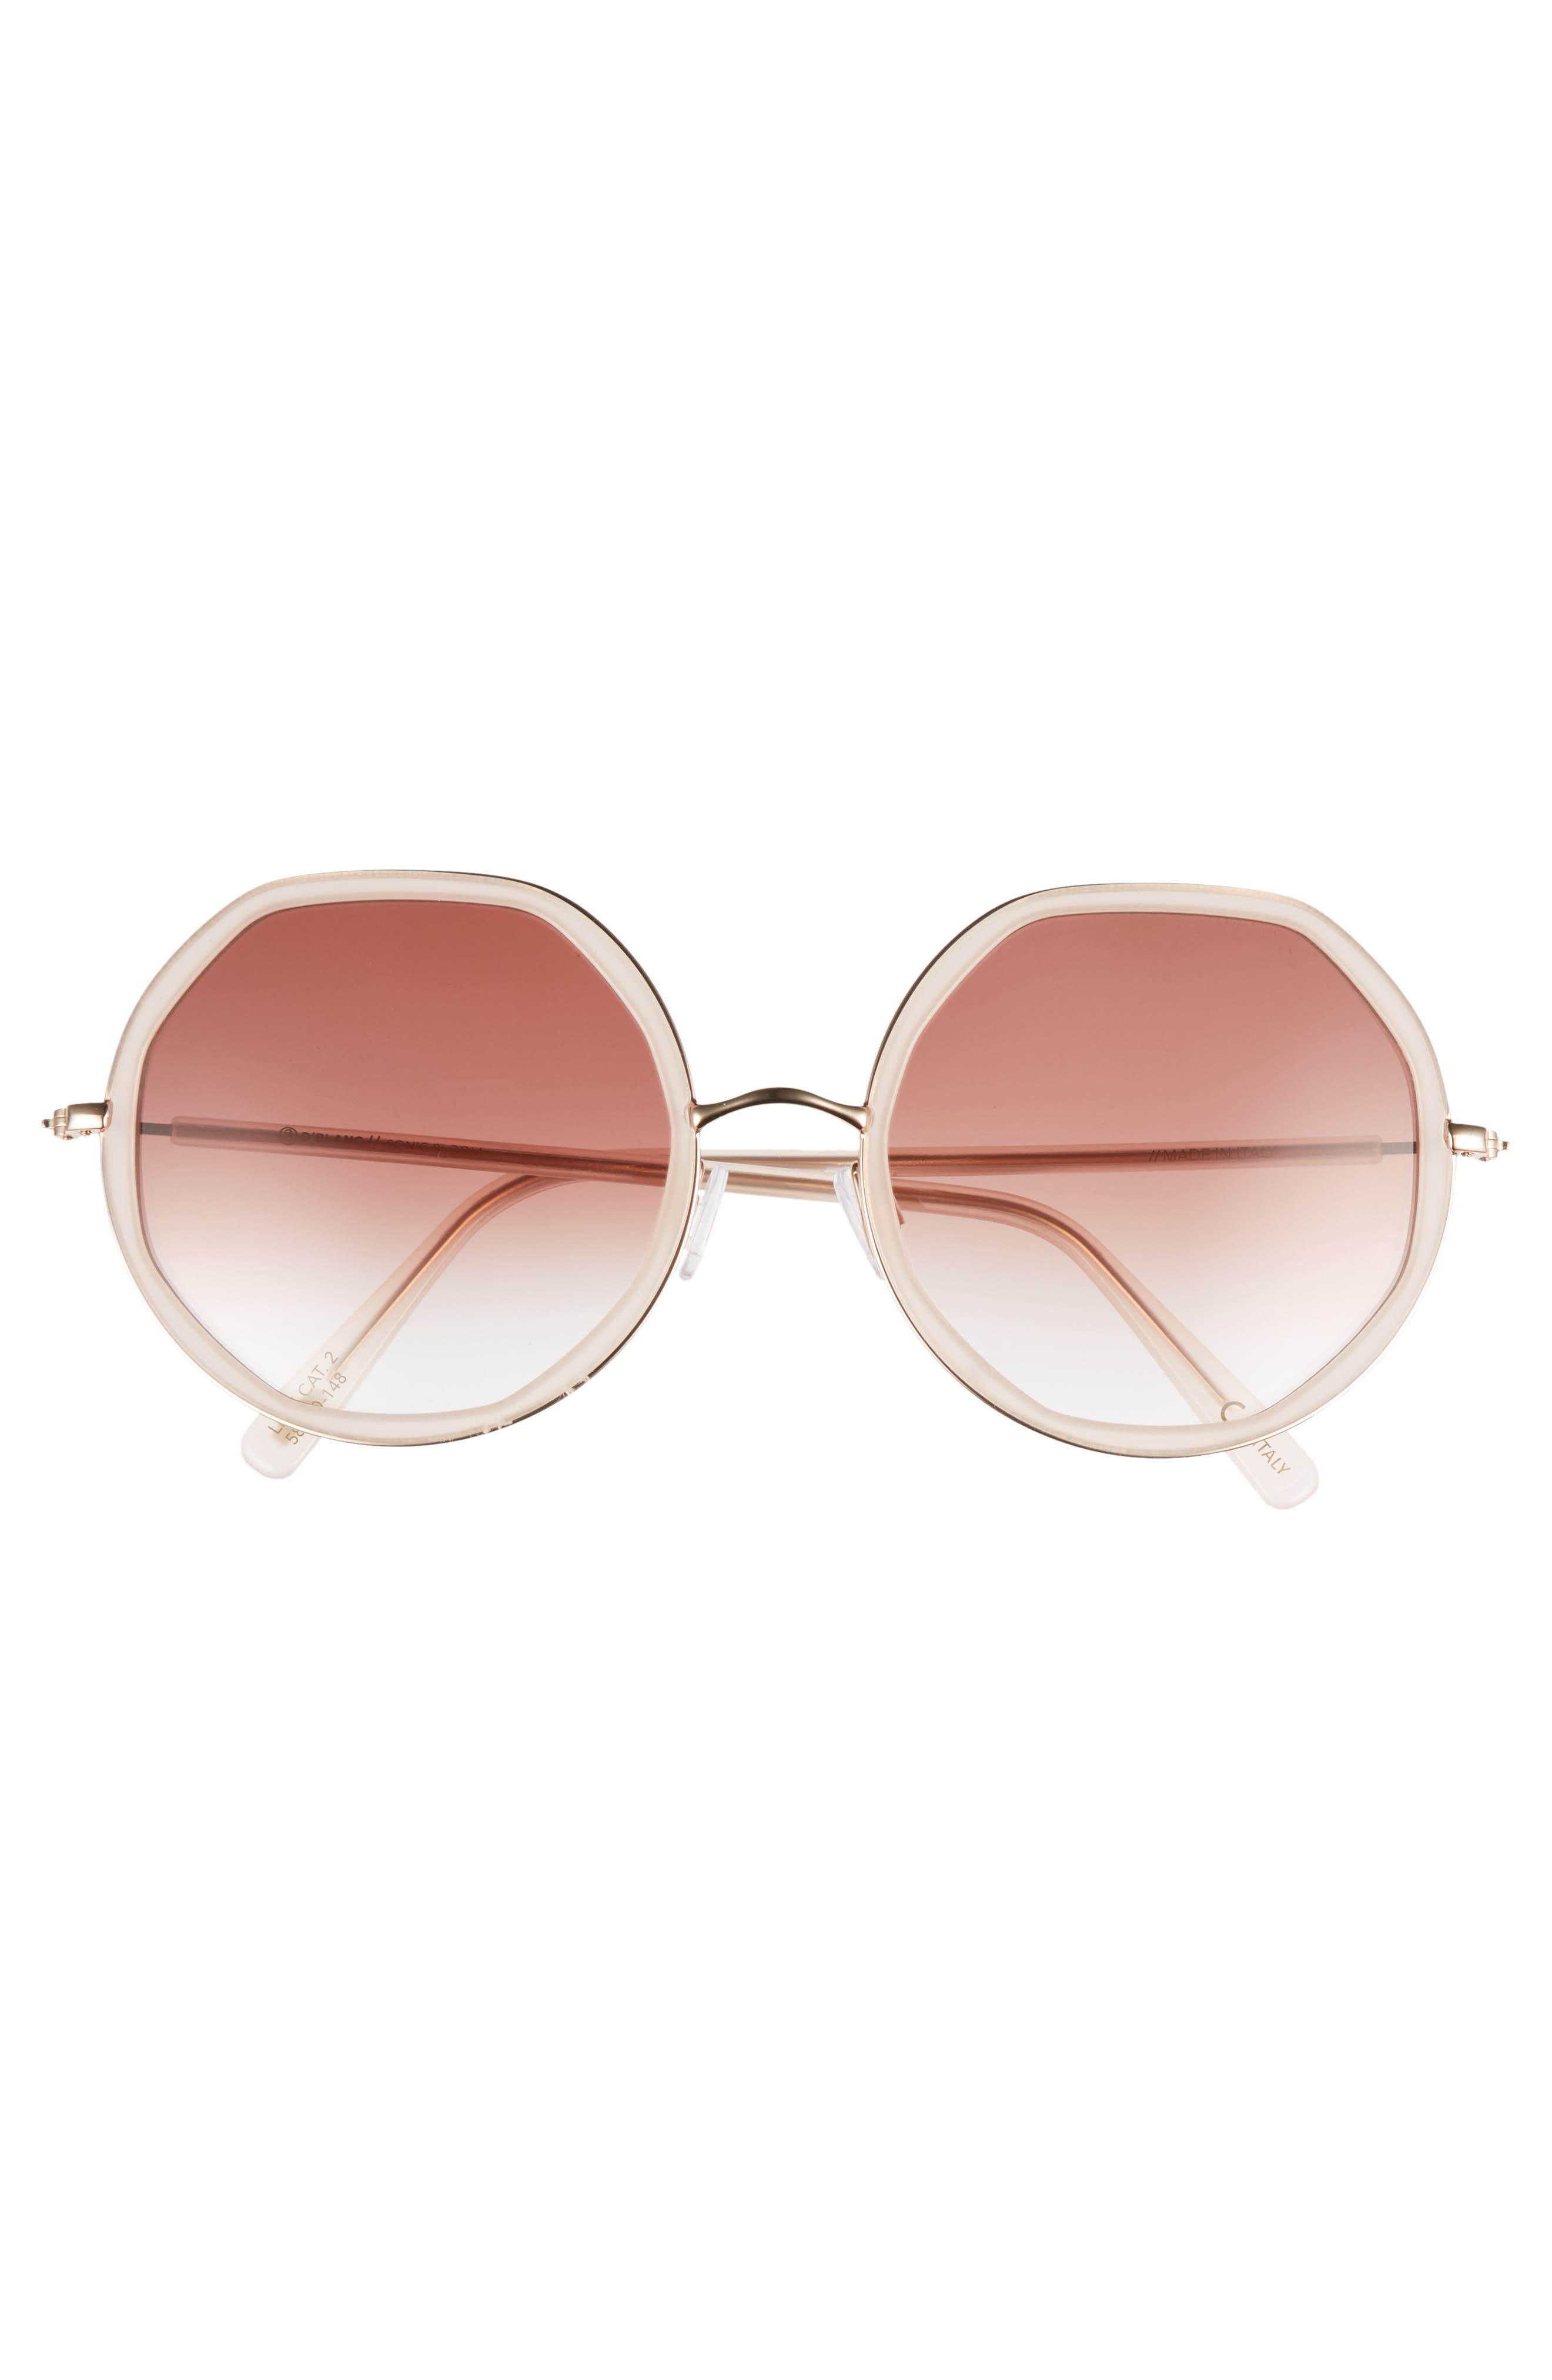 D'BLANC Sonic Bloom 58mm Sunglasses,                             Alternate thumbnail 3, color,                             Octagon Blush